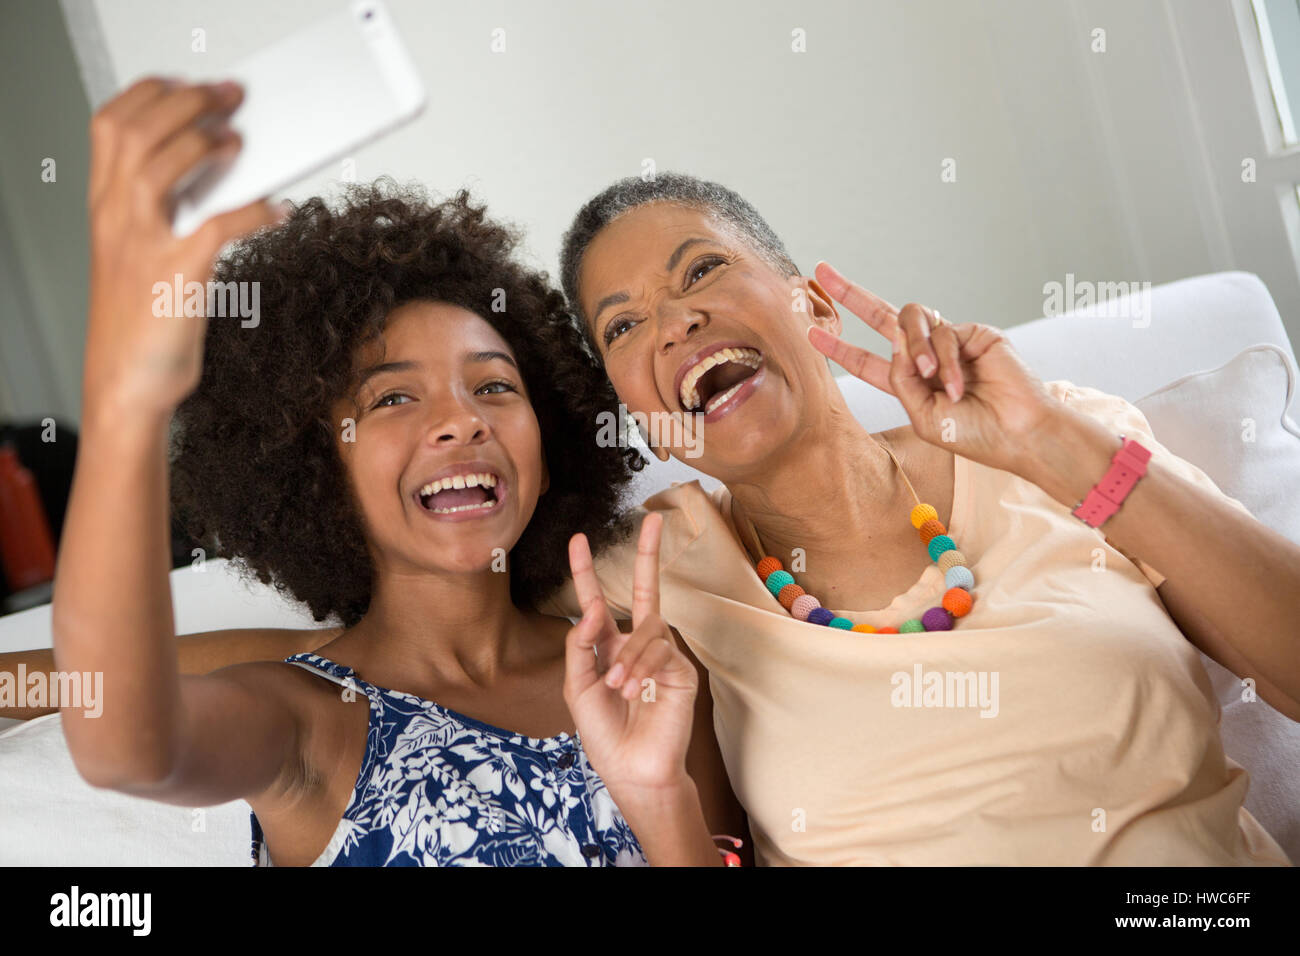 Forever Young Stock Photos & Forever Young Stock Images ...